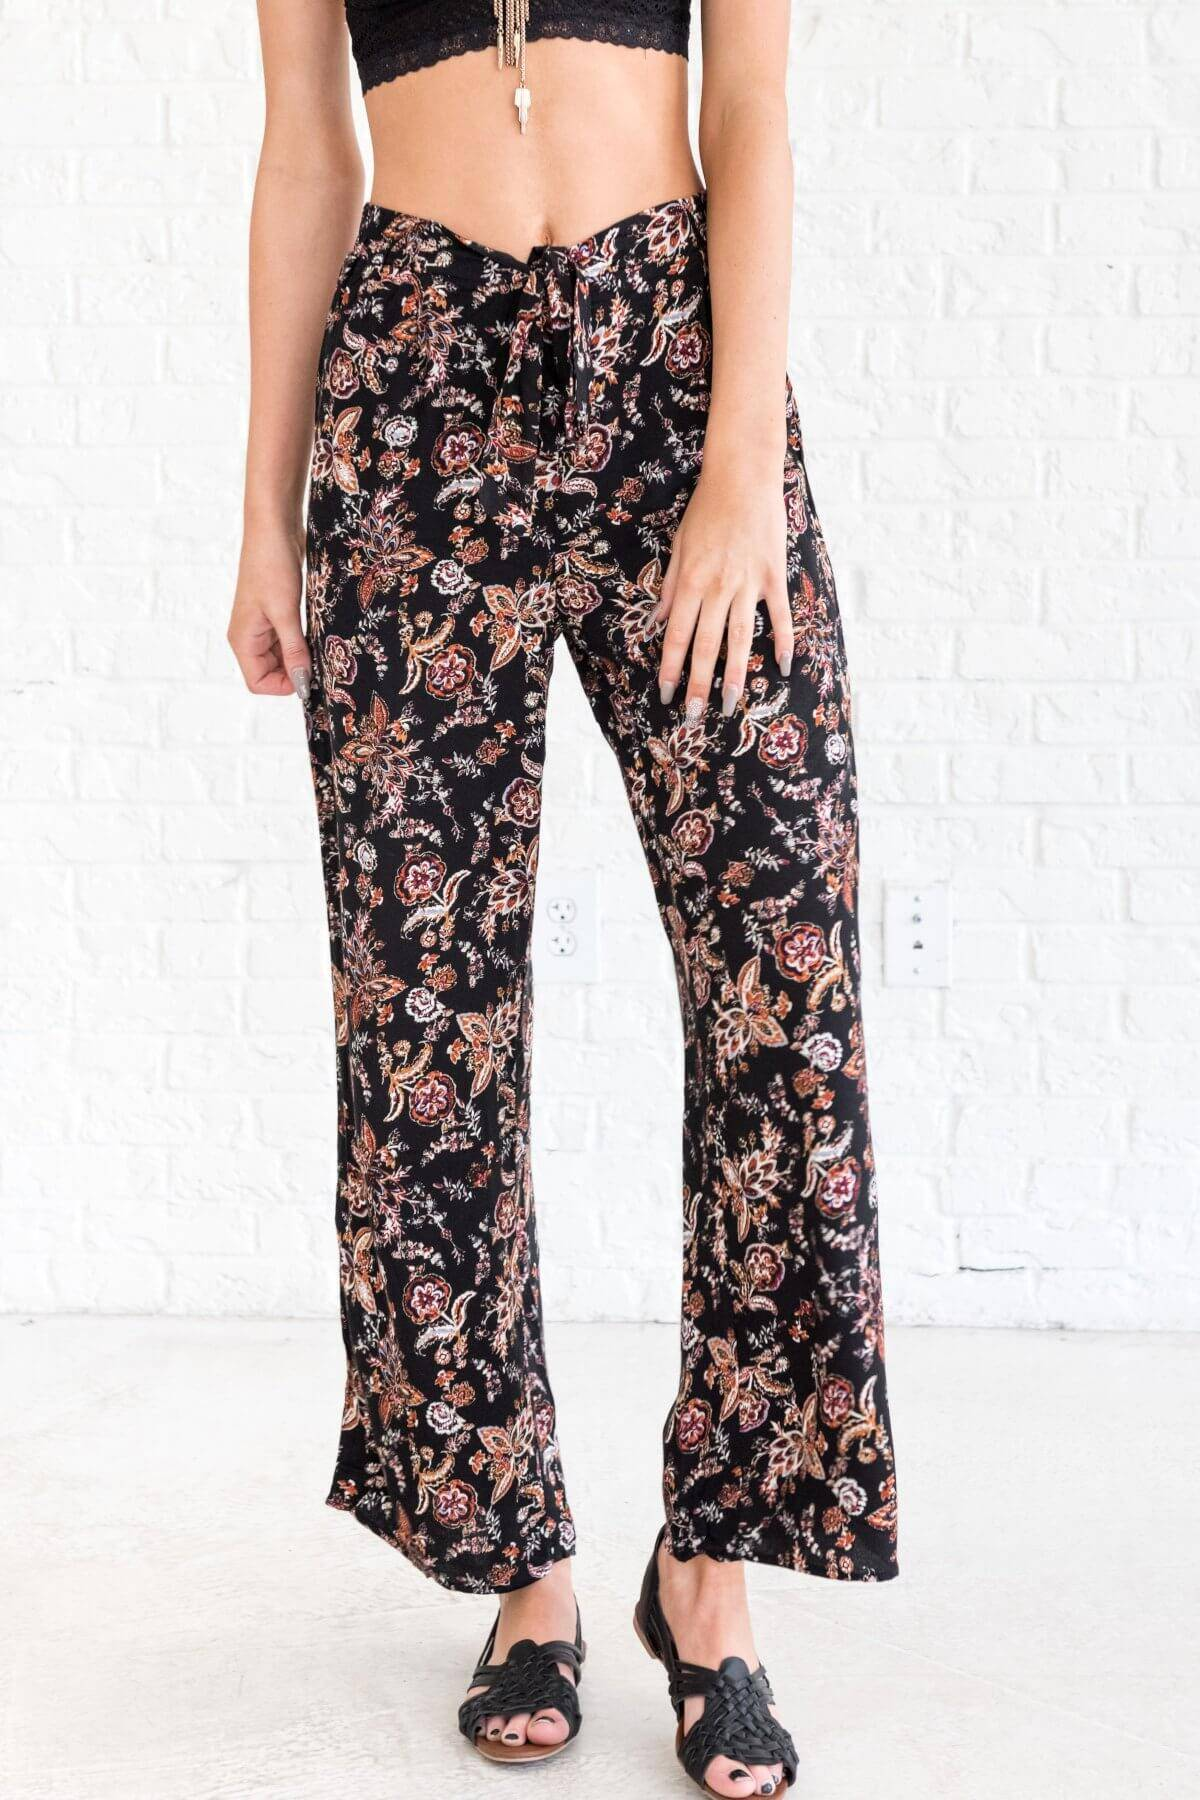 Black Rust Burgundy Purple Floral Flare Palazzo Pants